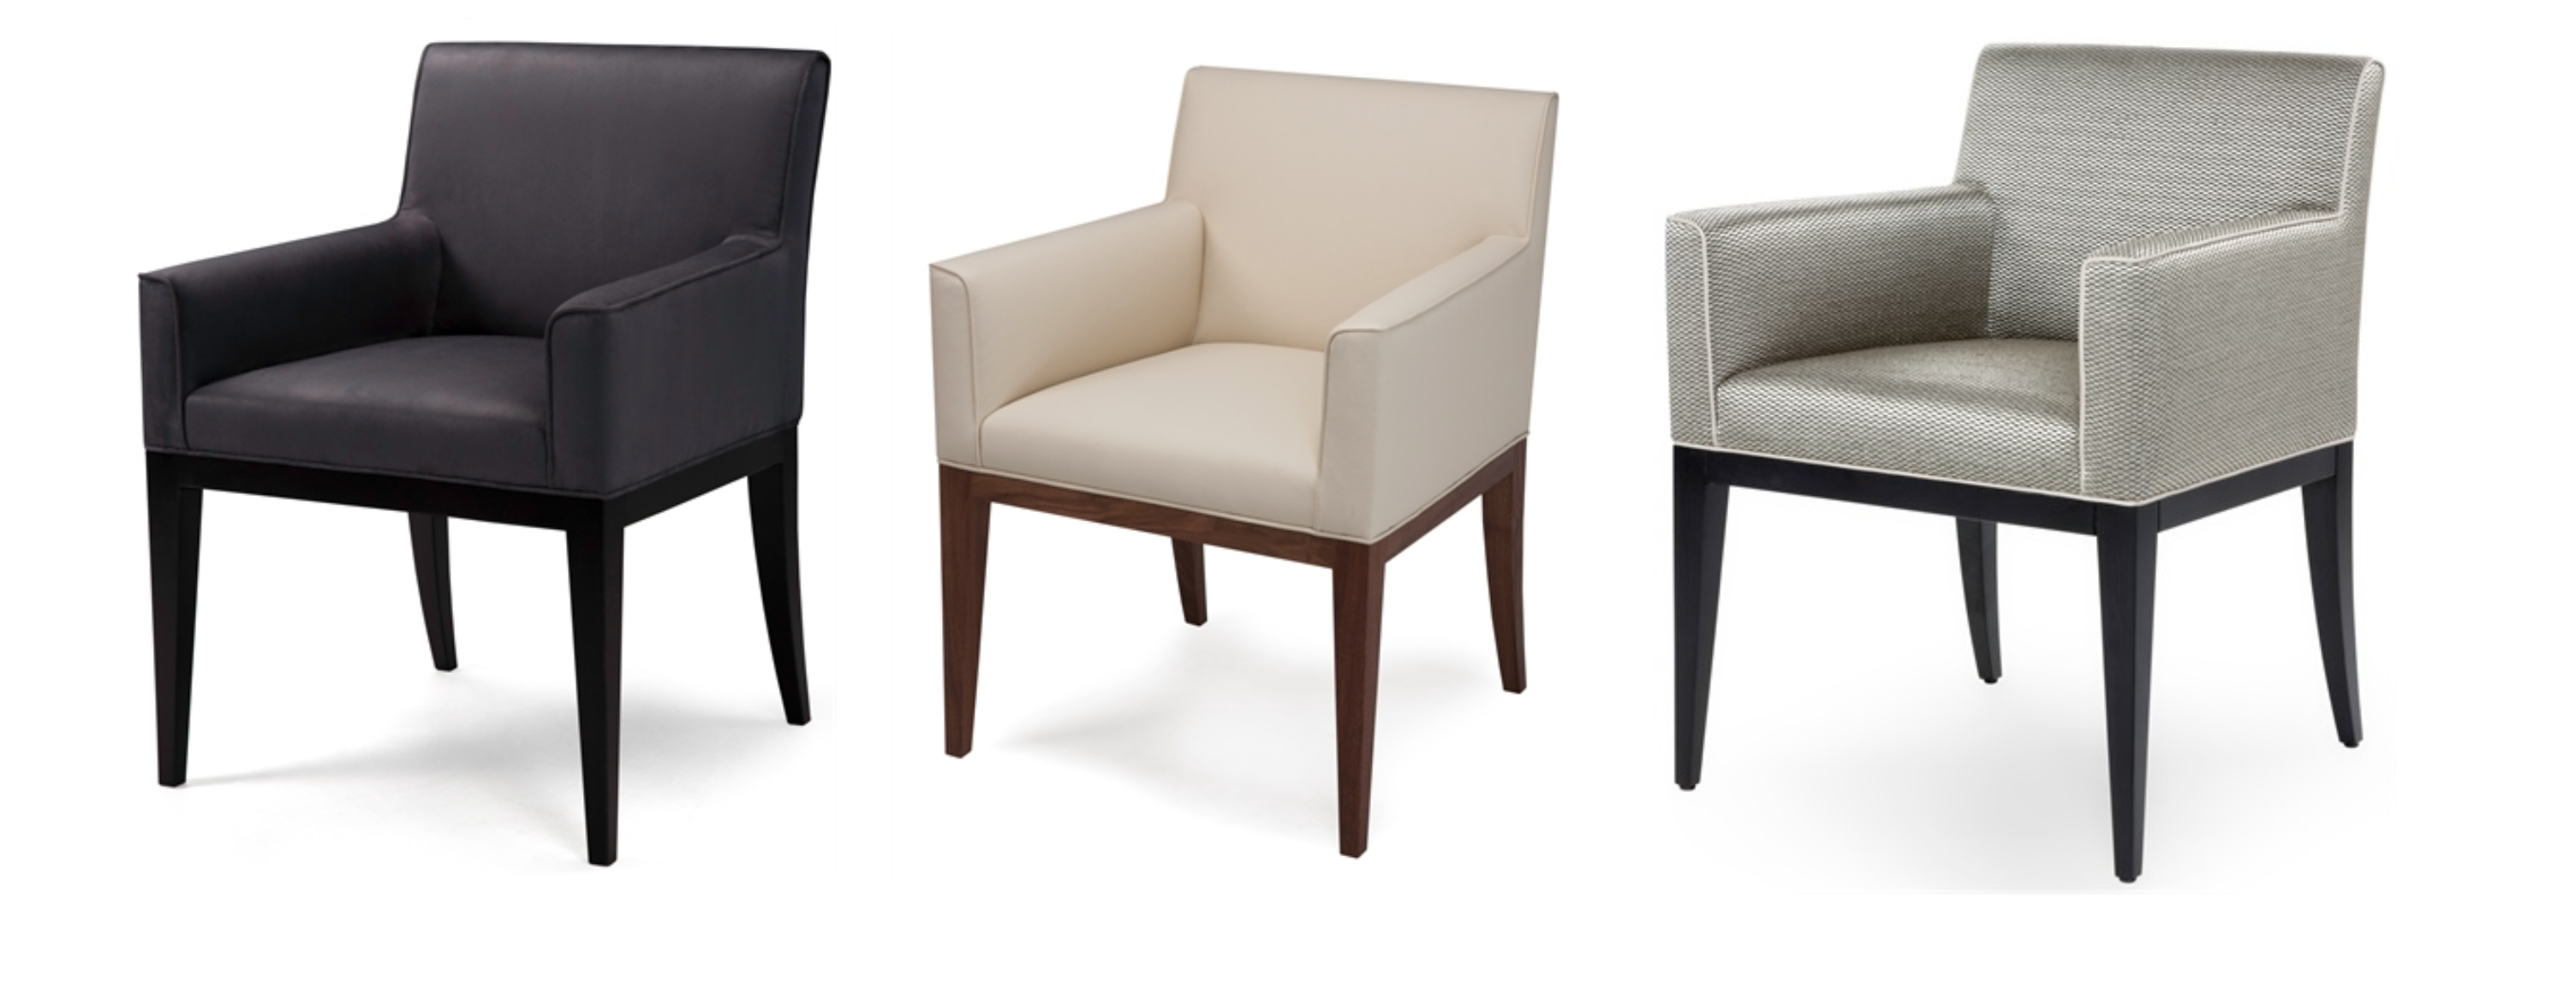 Byron Carver is a commanding dining chair with a contemporary